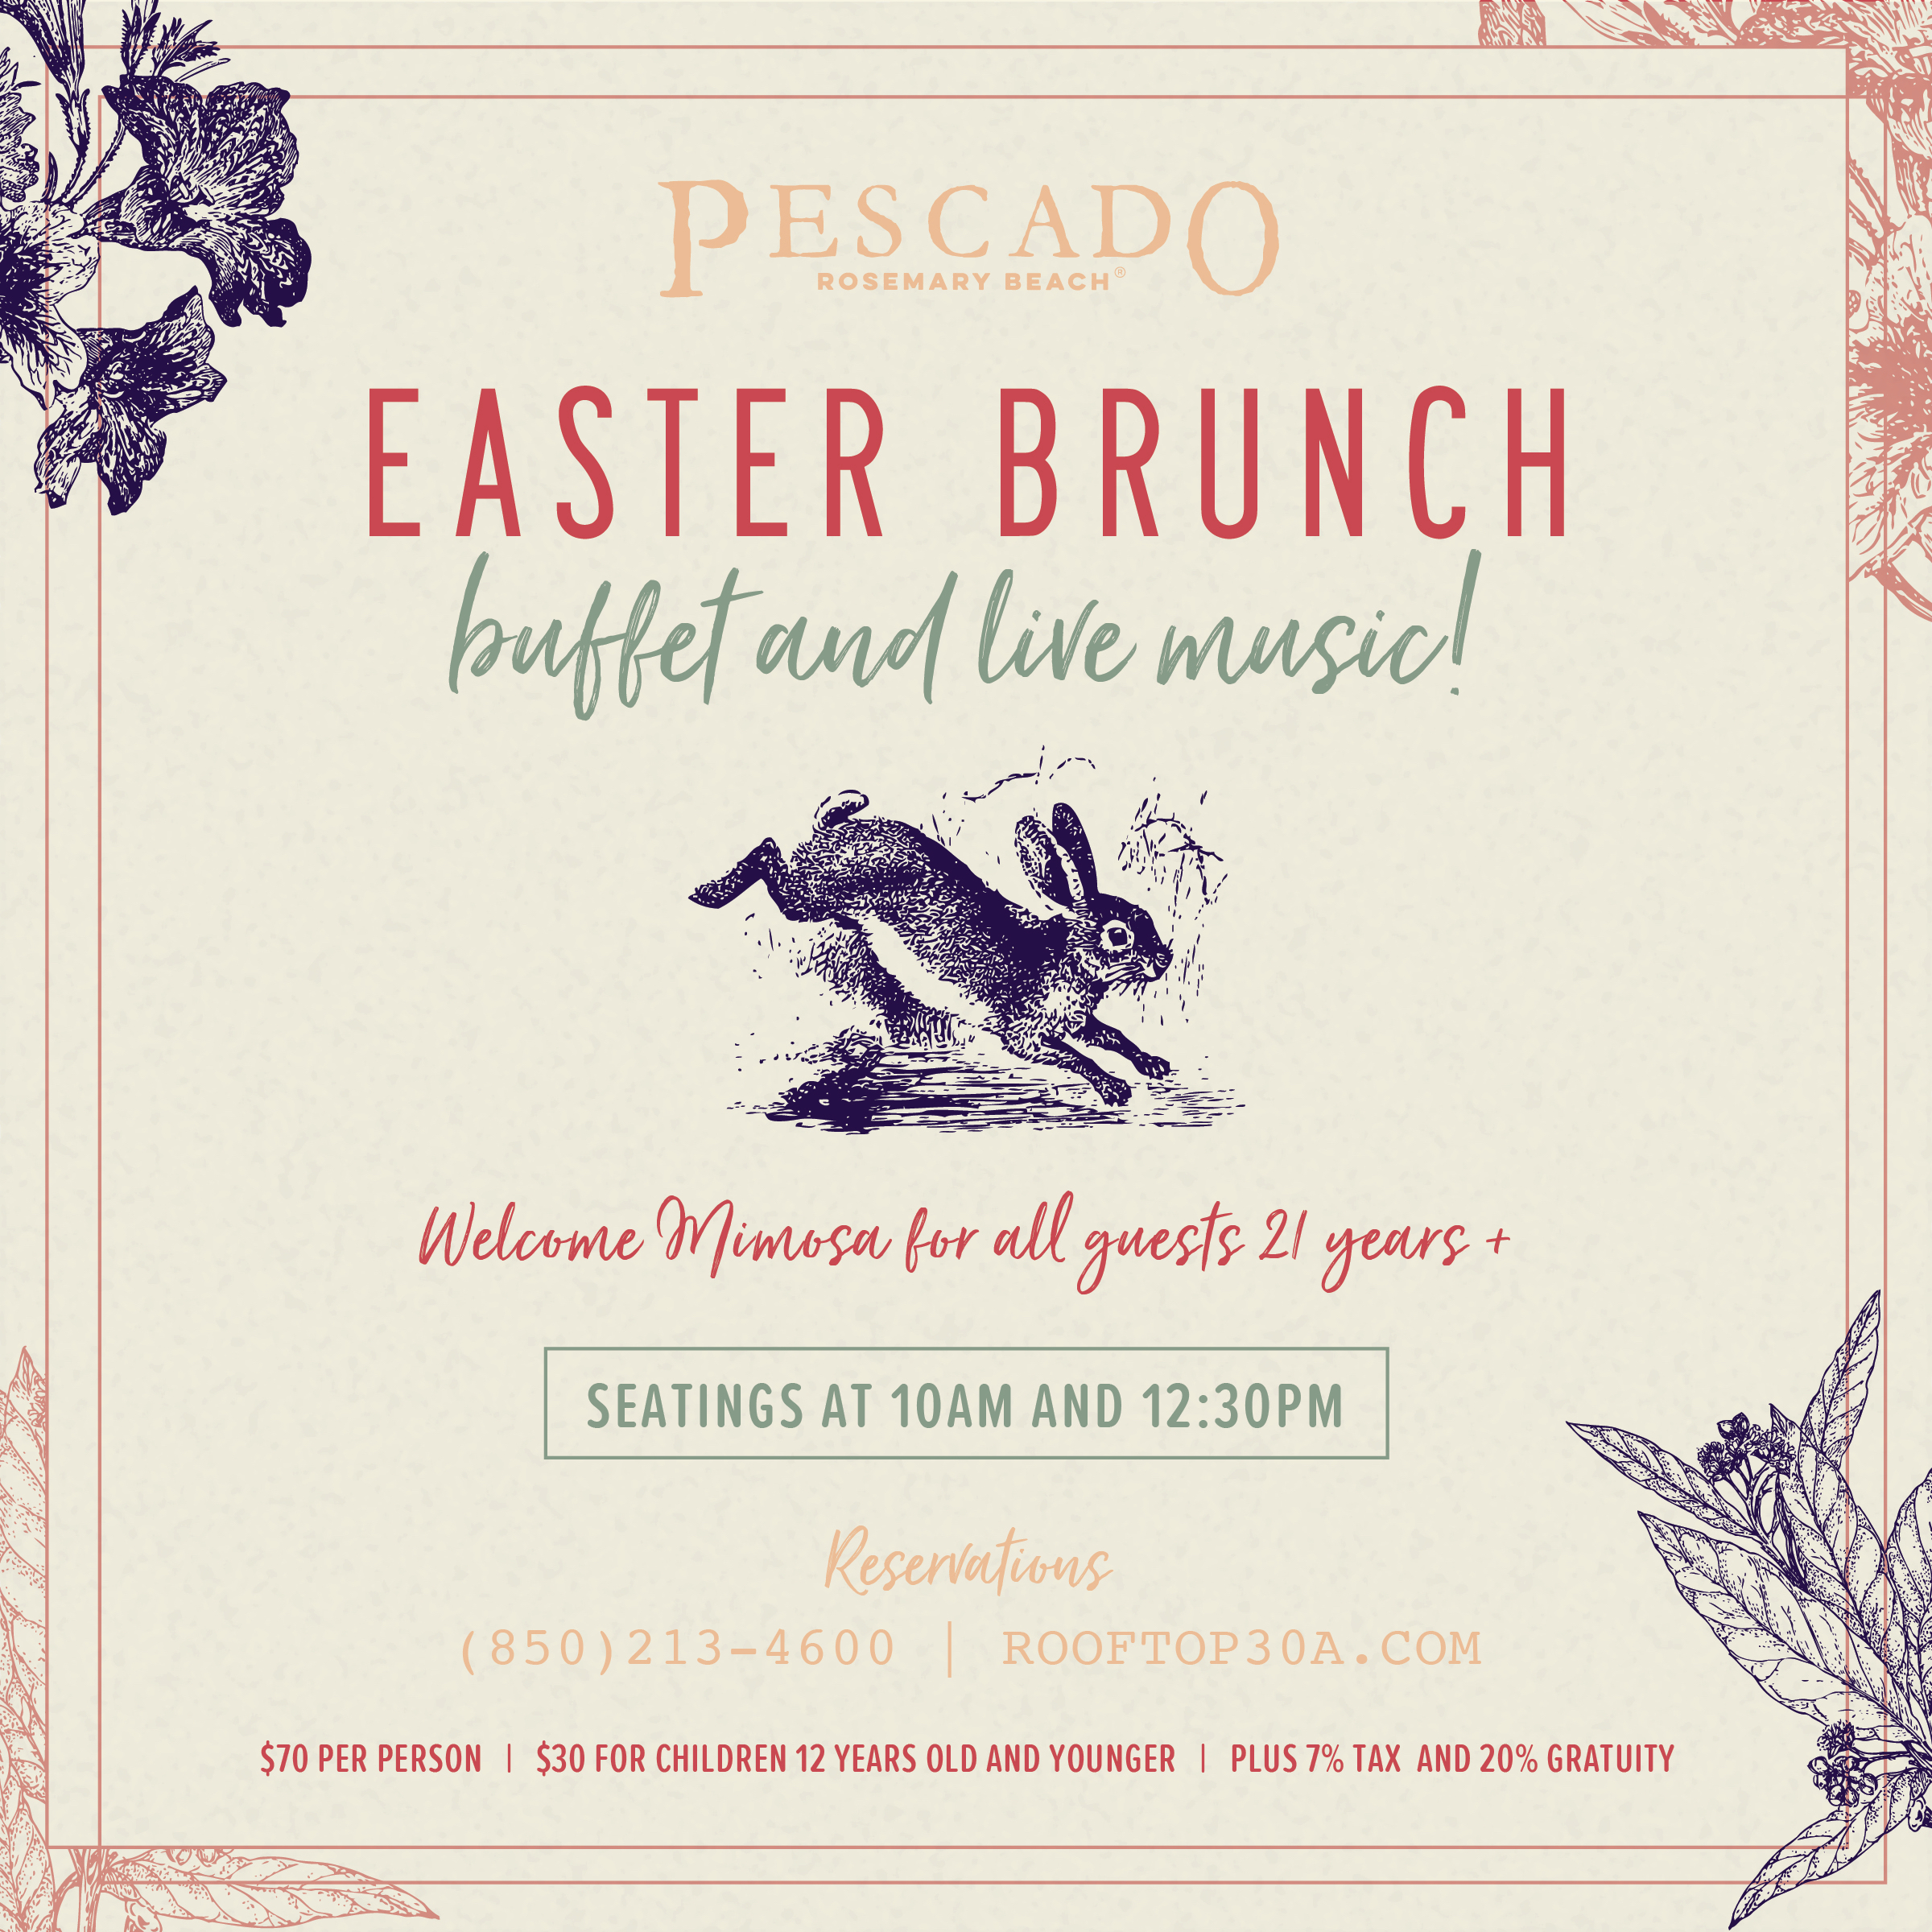 Easter Brunch at Pescado in Rosemary Beach